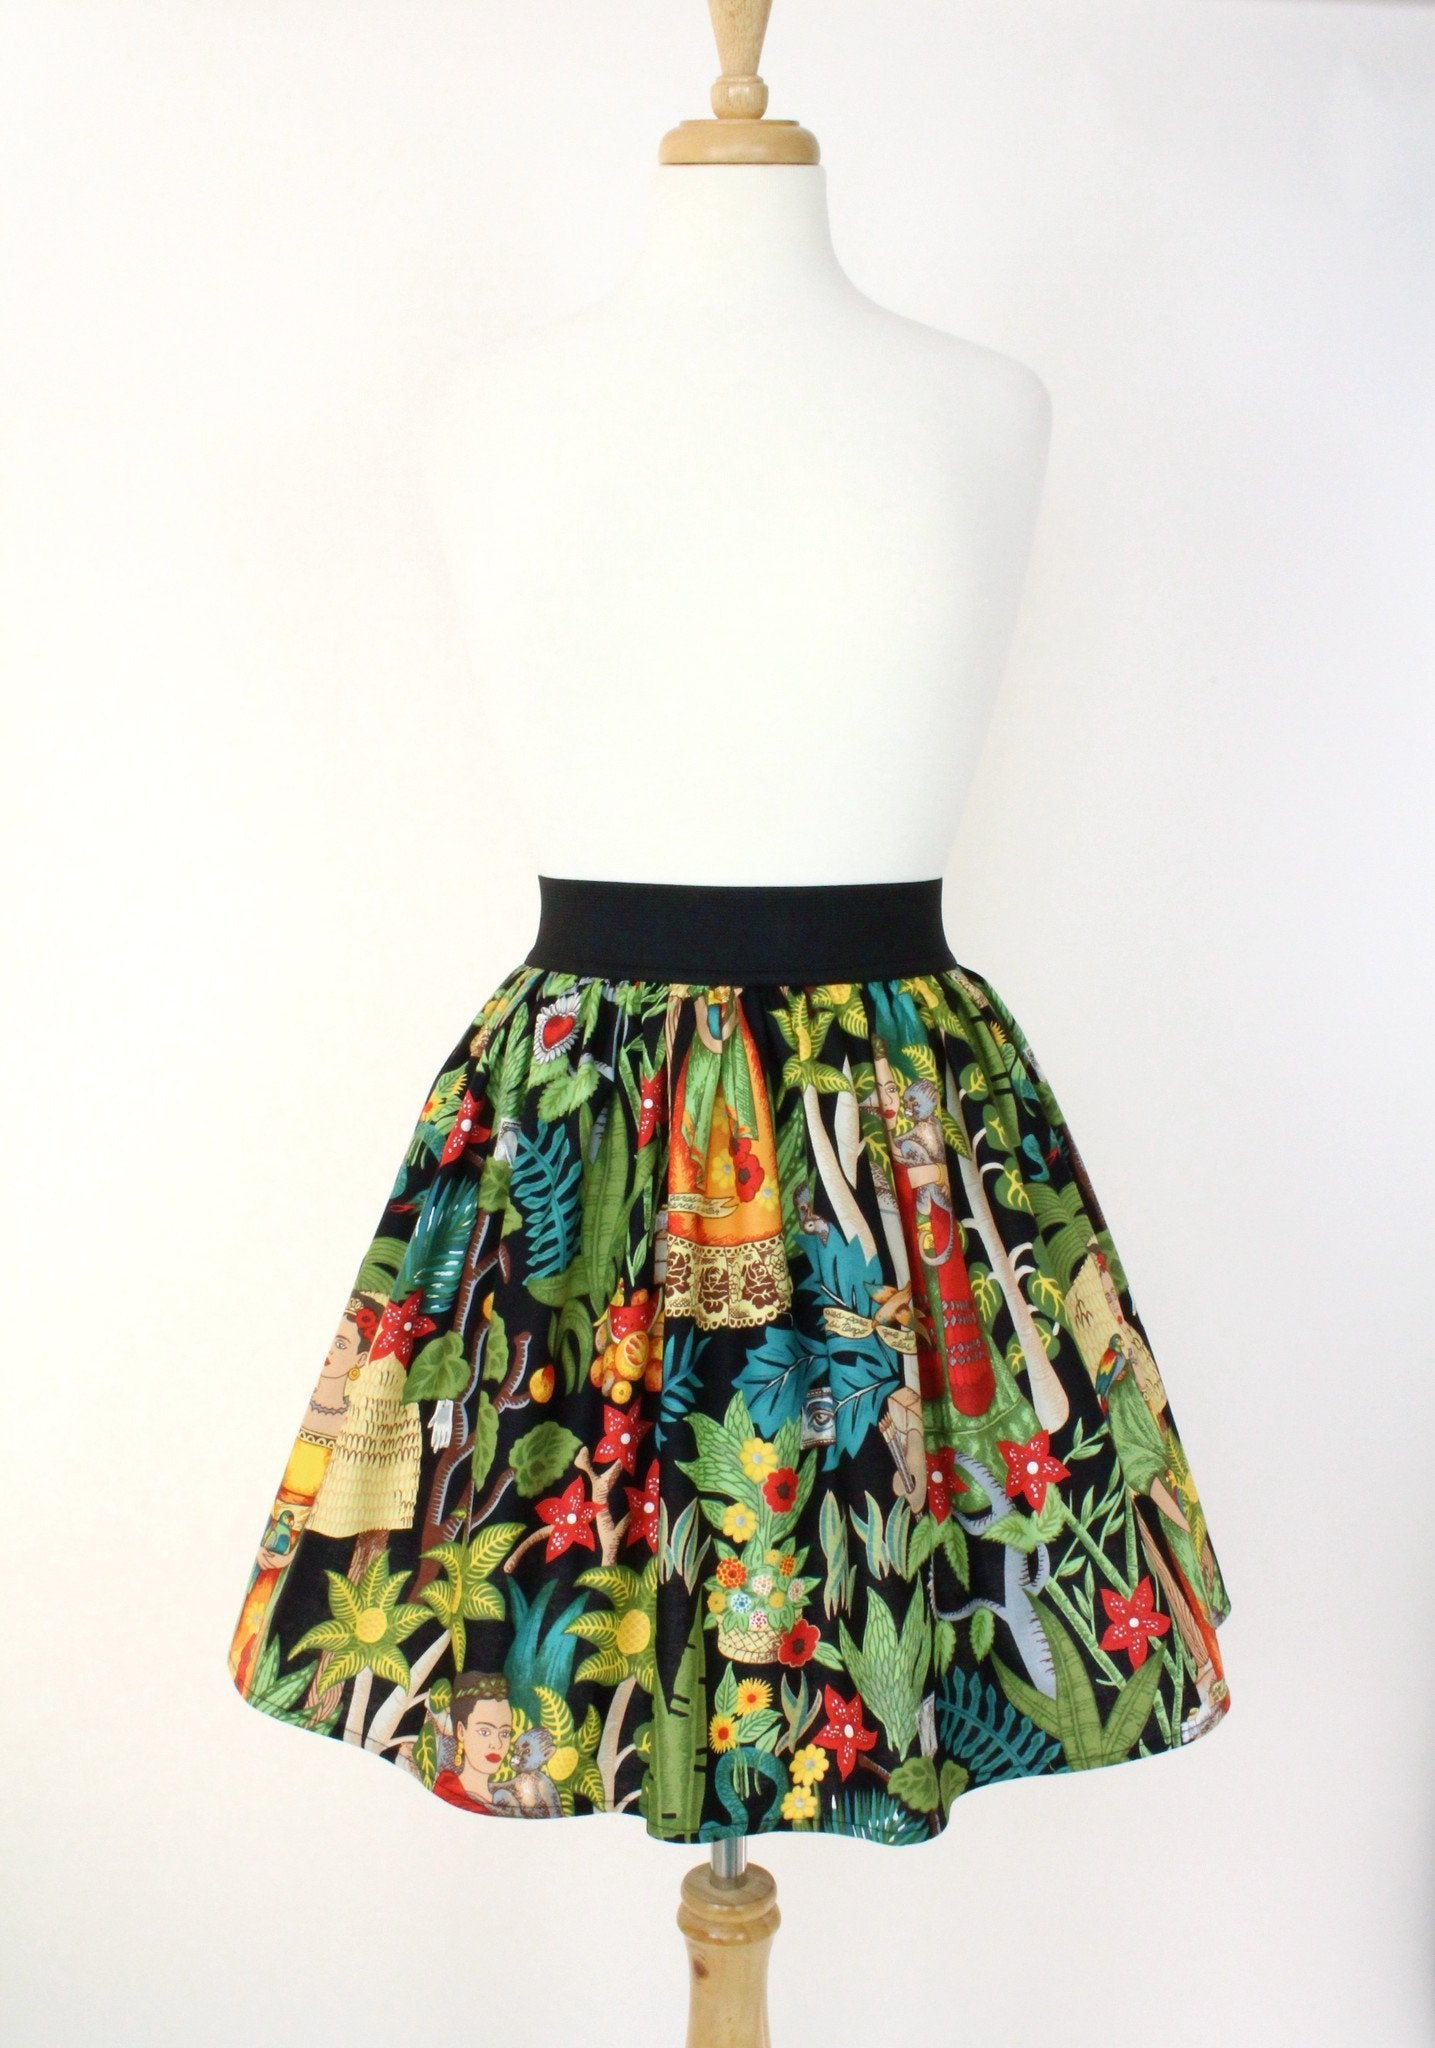 e0b552ad4 ... Load image into Gallery viewer, Black Frida Kahlo Skirt ...